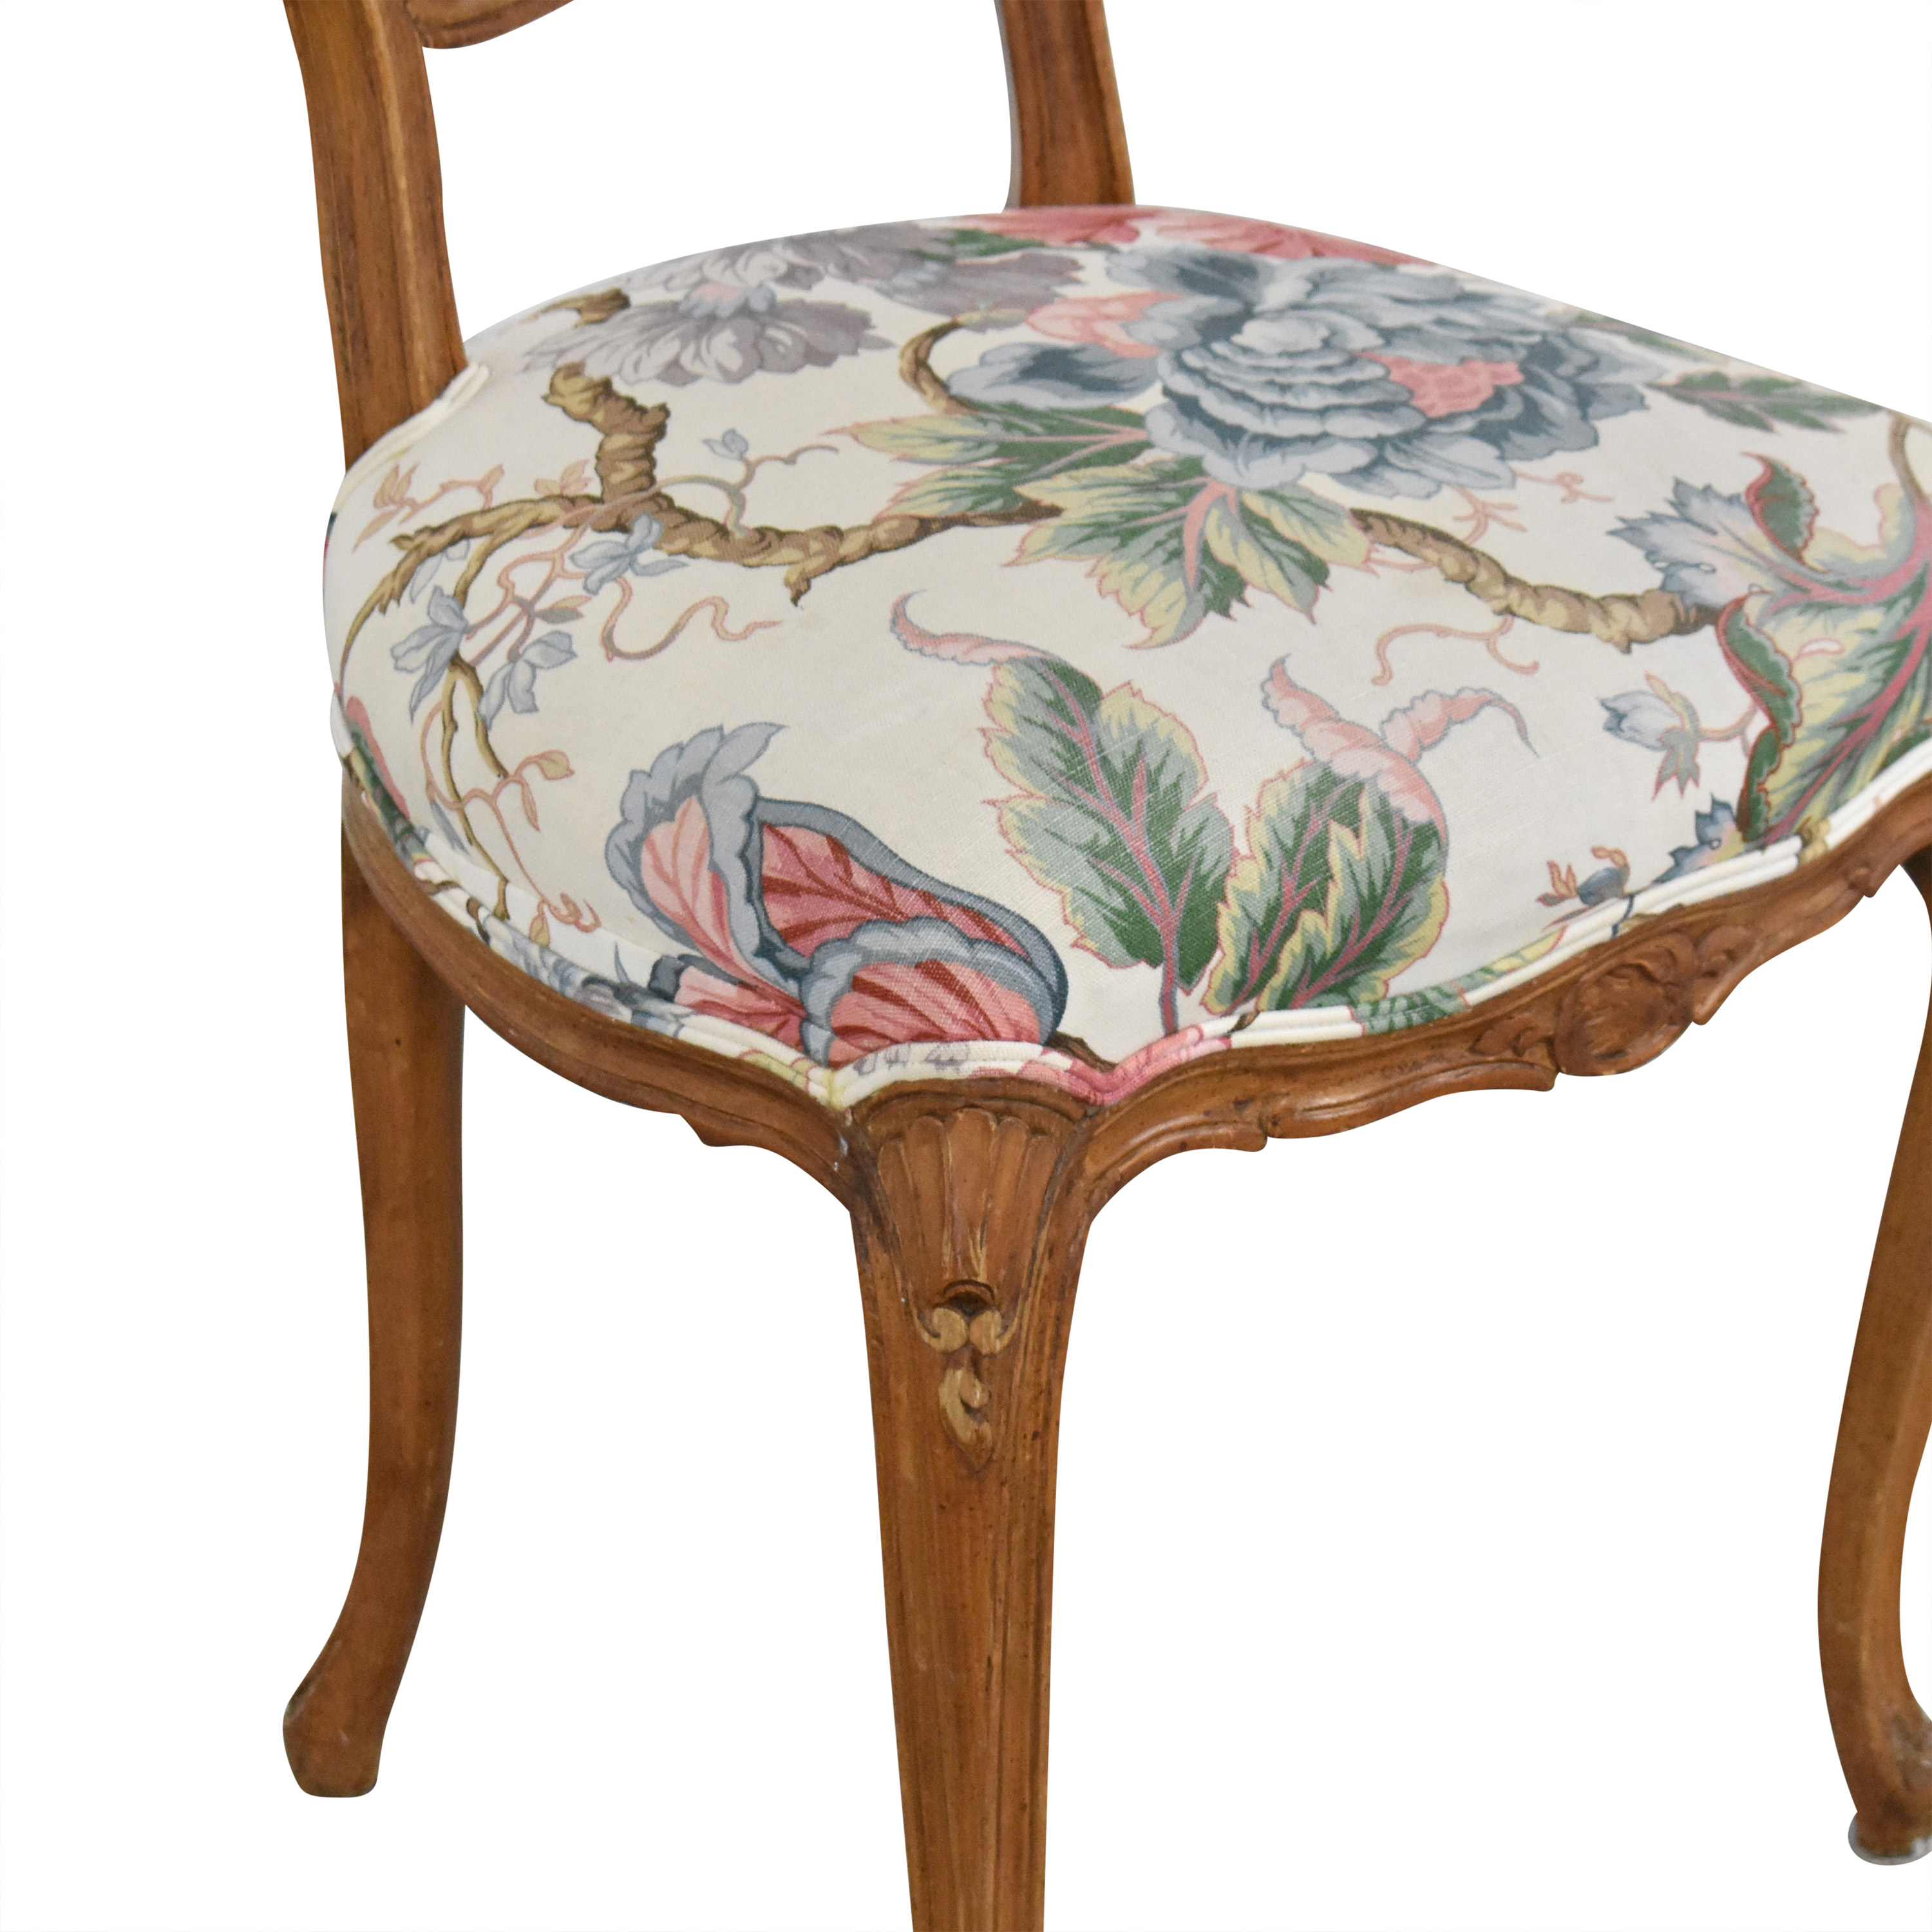 buy  Floral Vintage-Style Upholstered Chair online